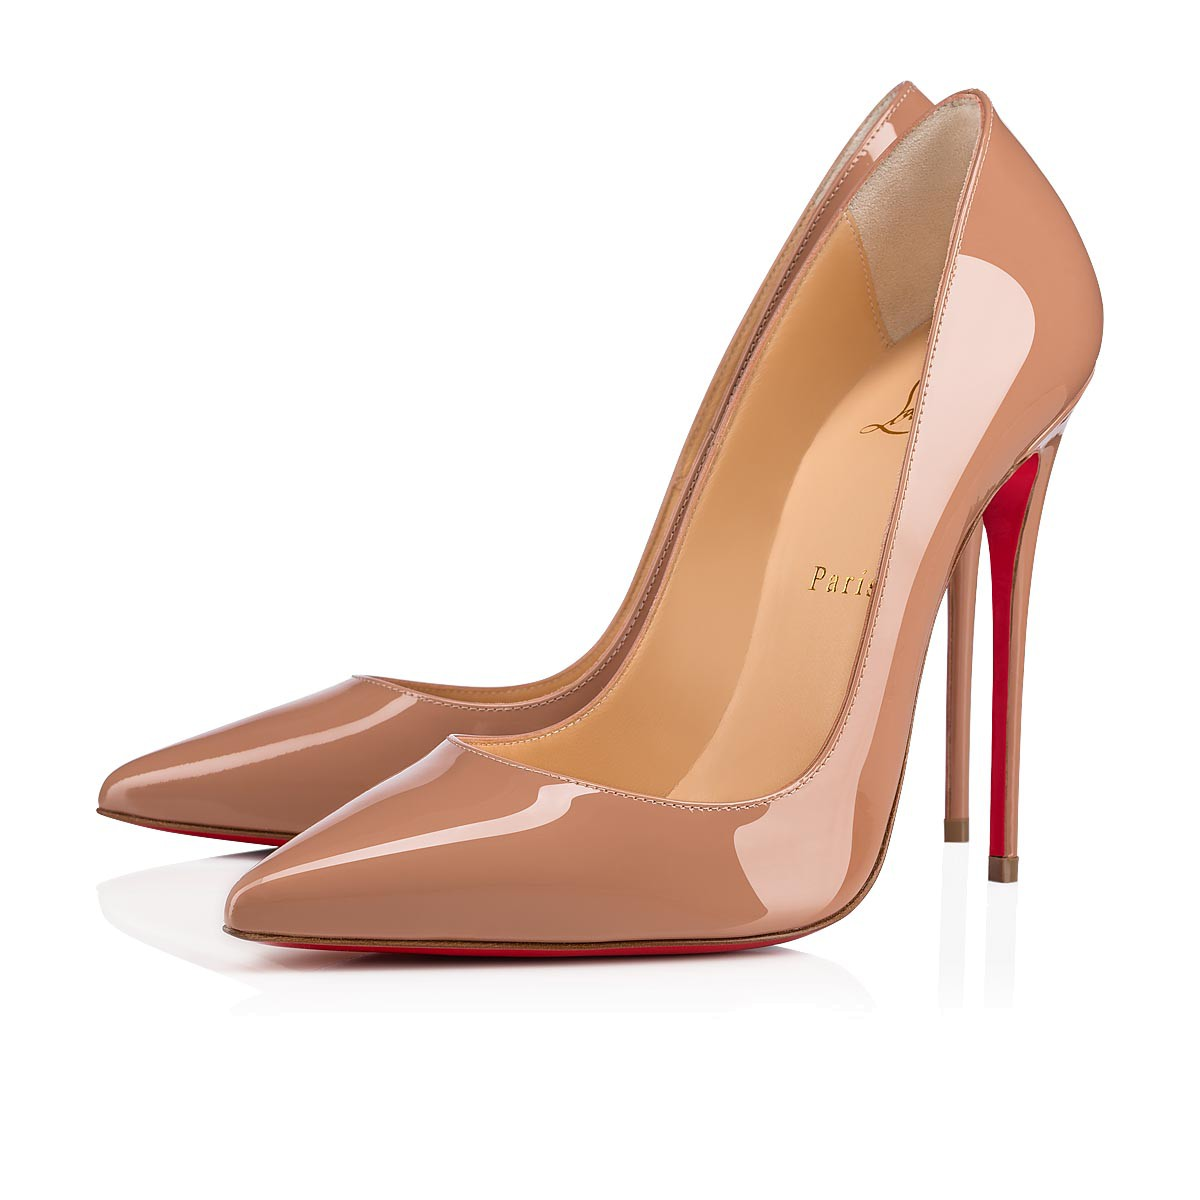 7dc63f4cbe7 So Kate 120 Nude Patent Leather - Women Shoes - Christian Louboutin